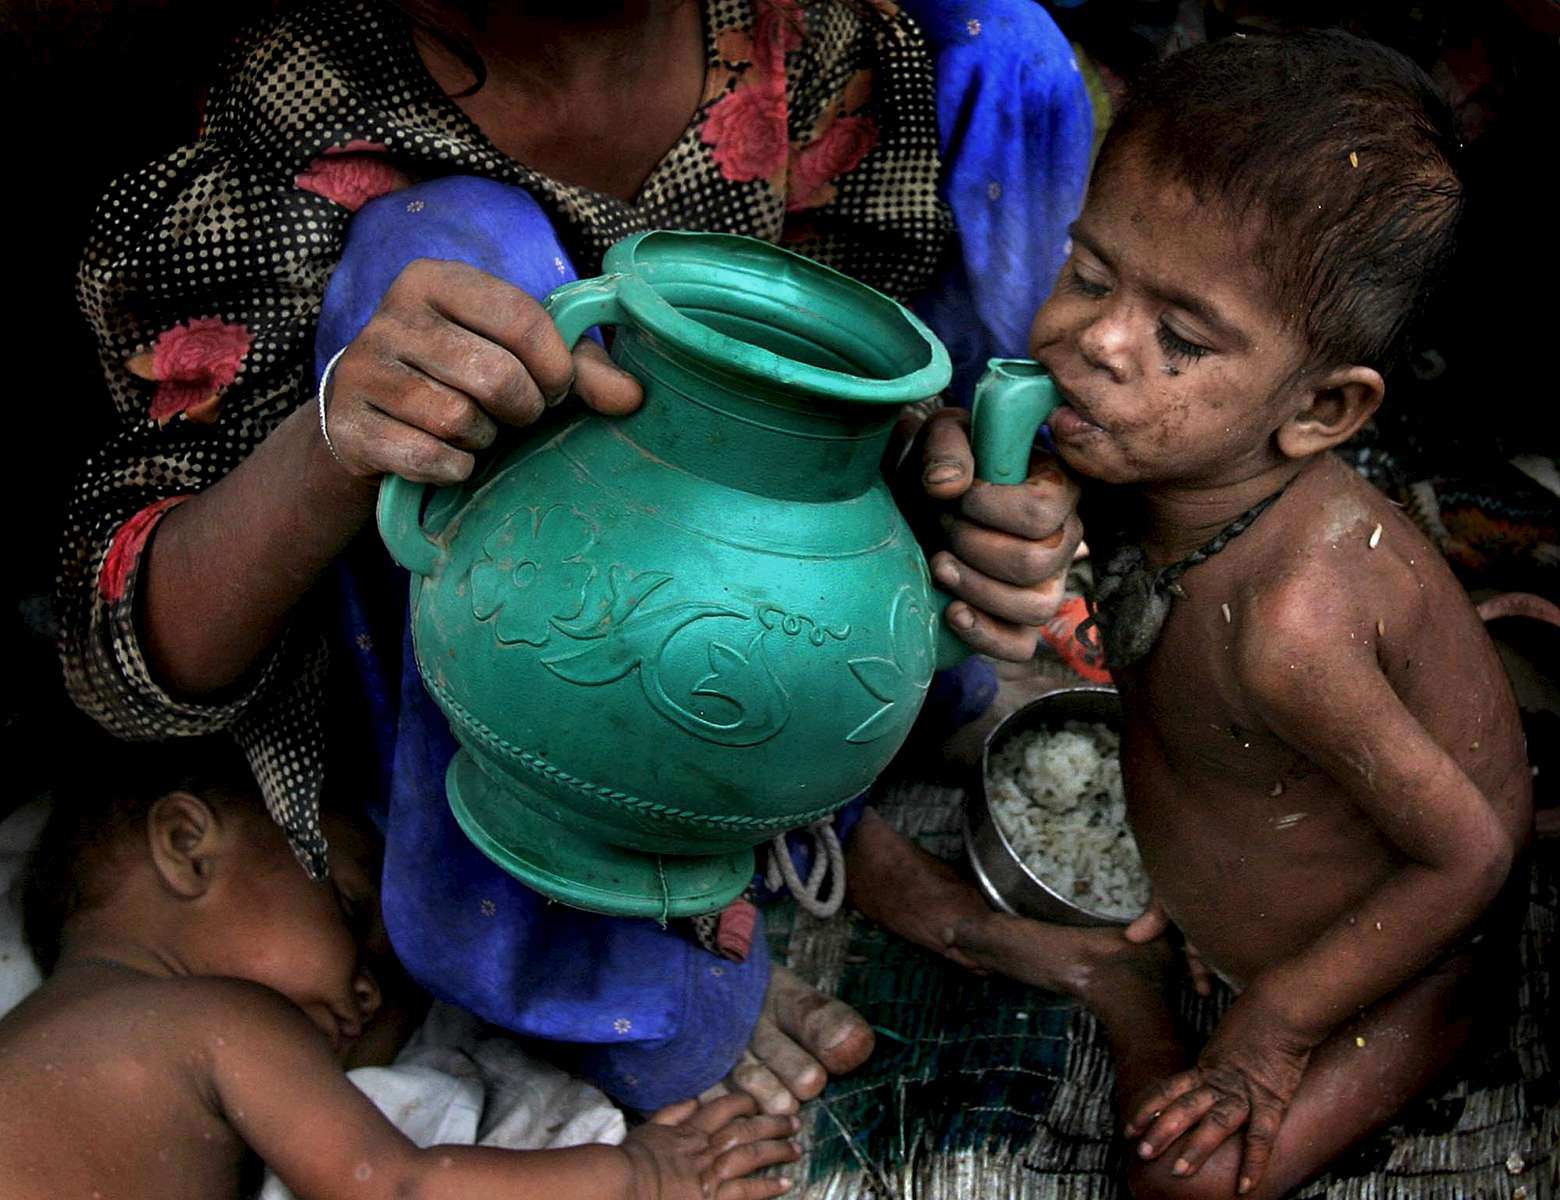 A girl gives her younger sibling a drink of water in a slum-region of New Delhi.